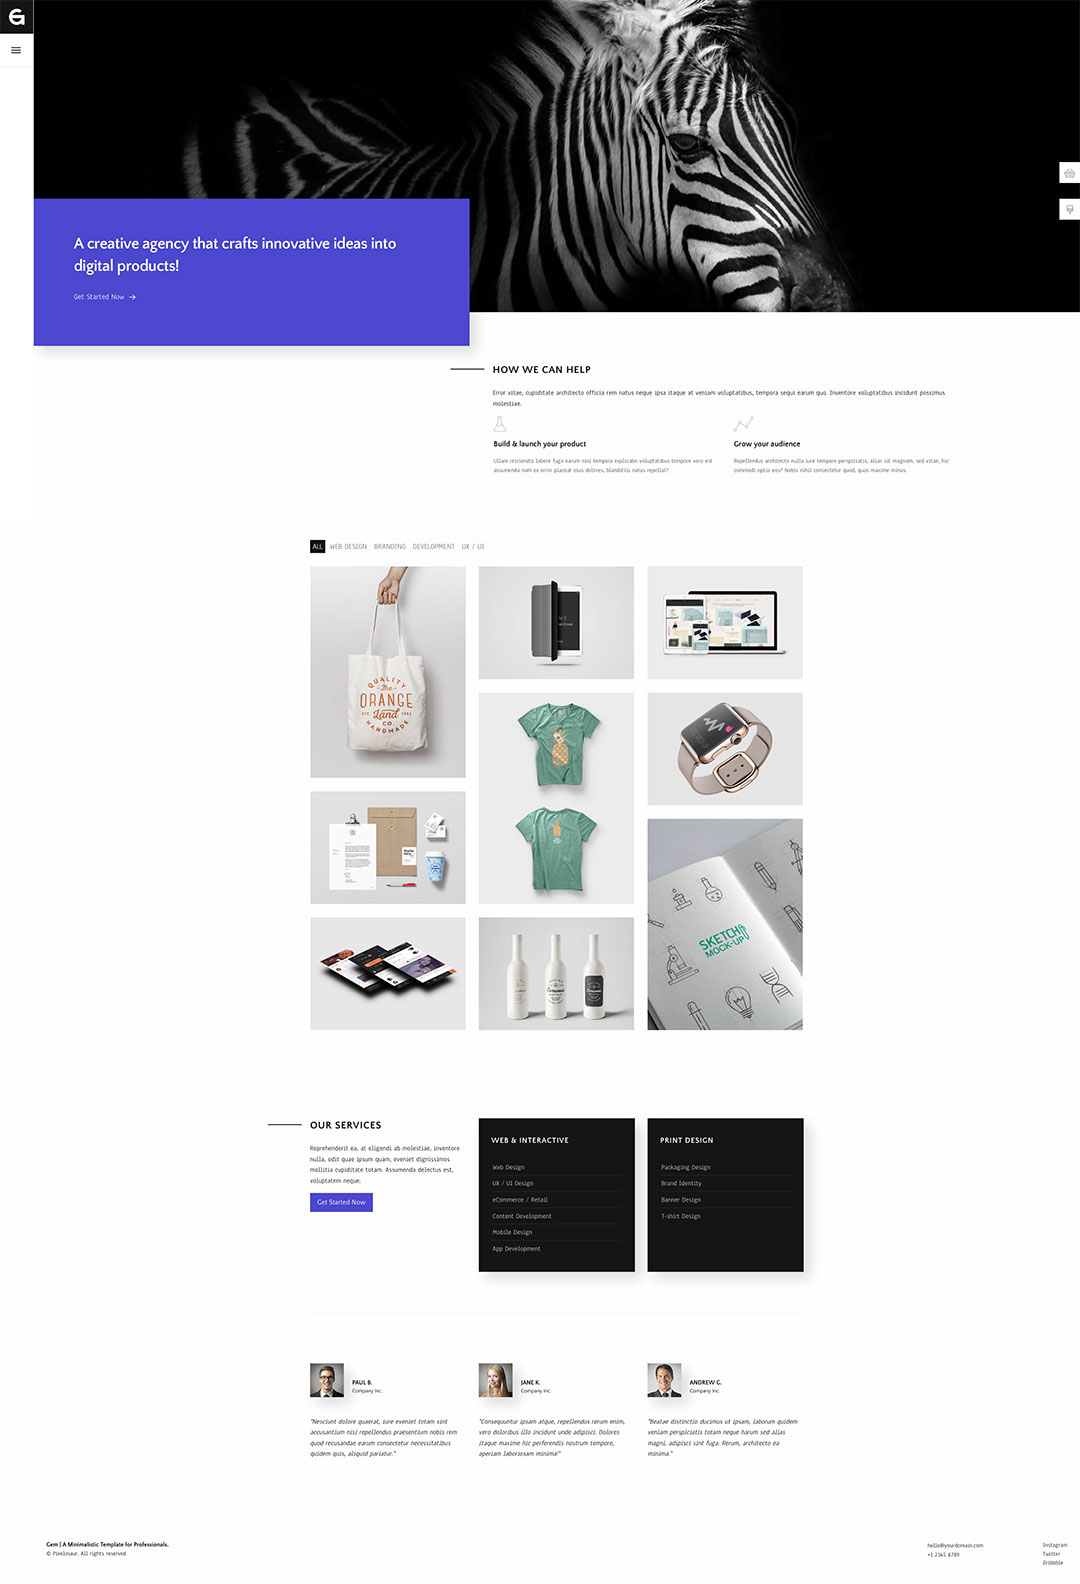 Gem - Foundation 6 Agency Template by Pixelosaur on Behance